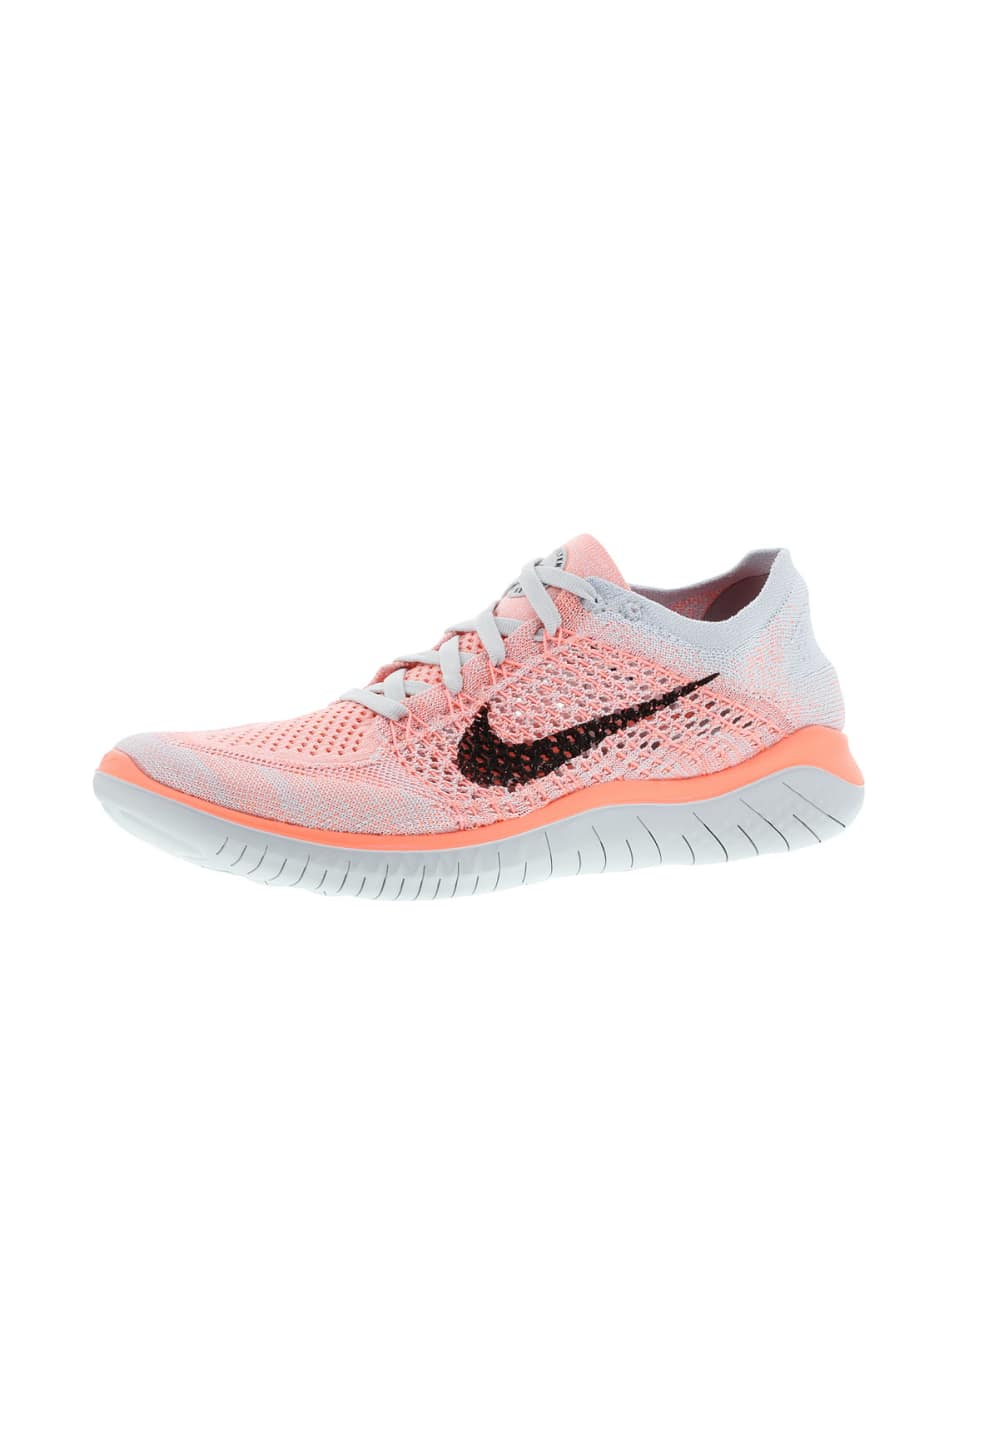 timeless design b3de2 9c46b Nike Free RN Flyknit 2018 - Running shoes for Women - Pink